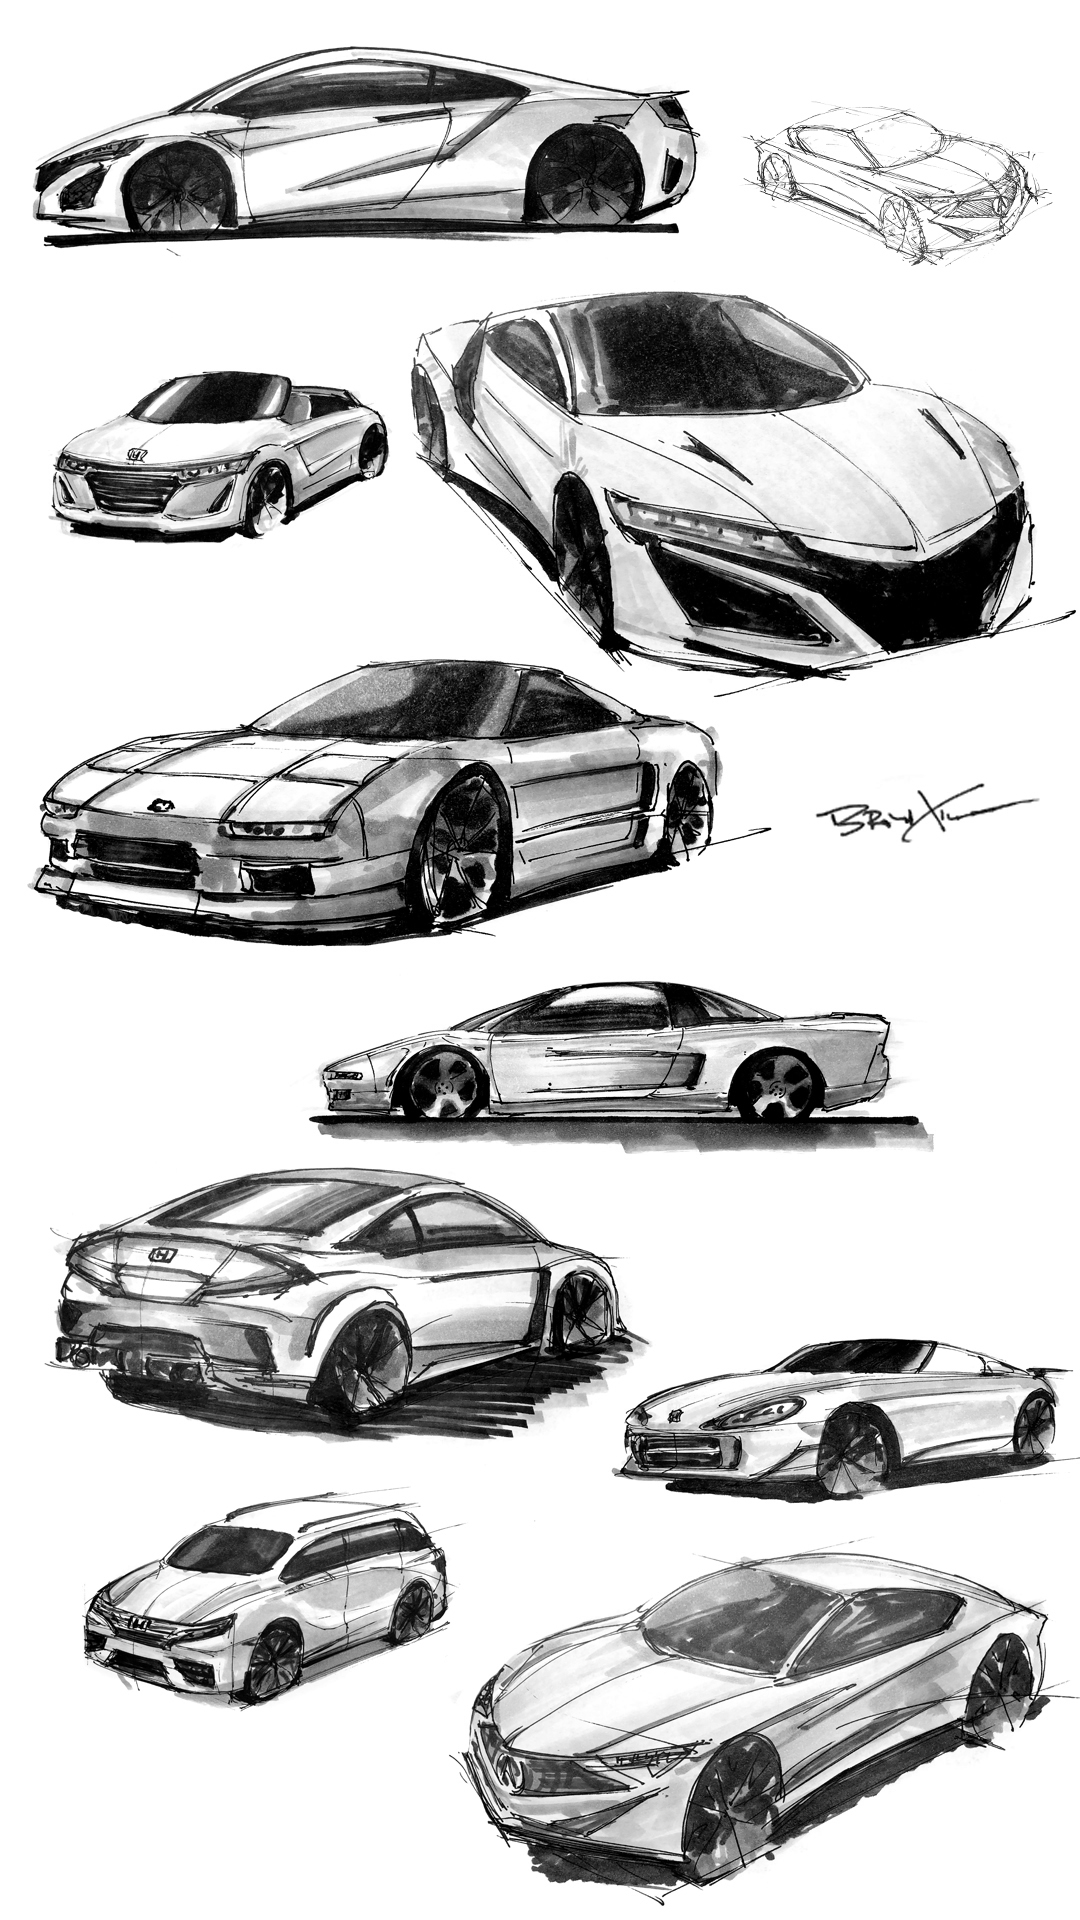 carsketches_brianxiao.jpg